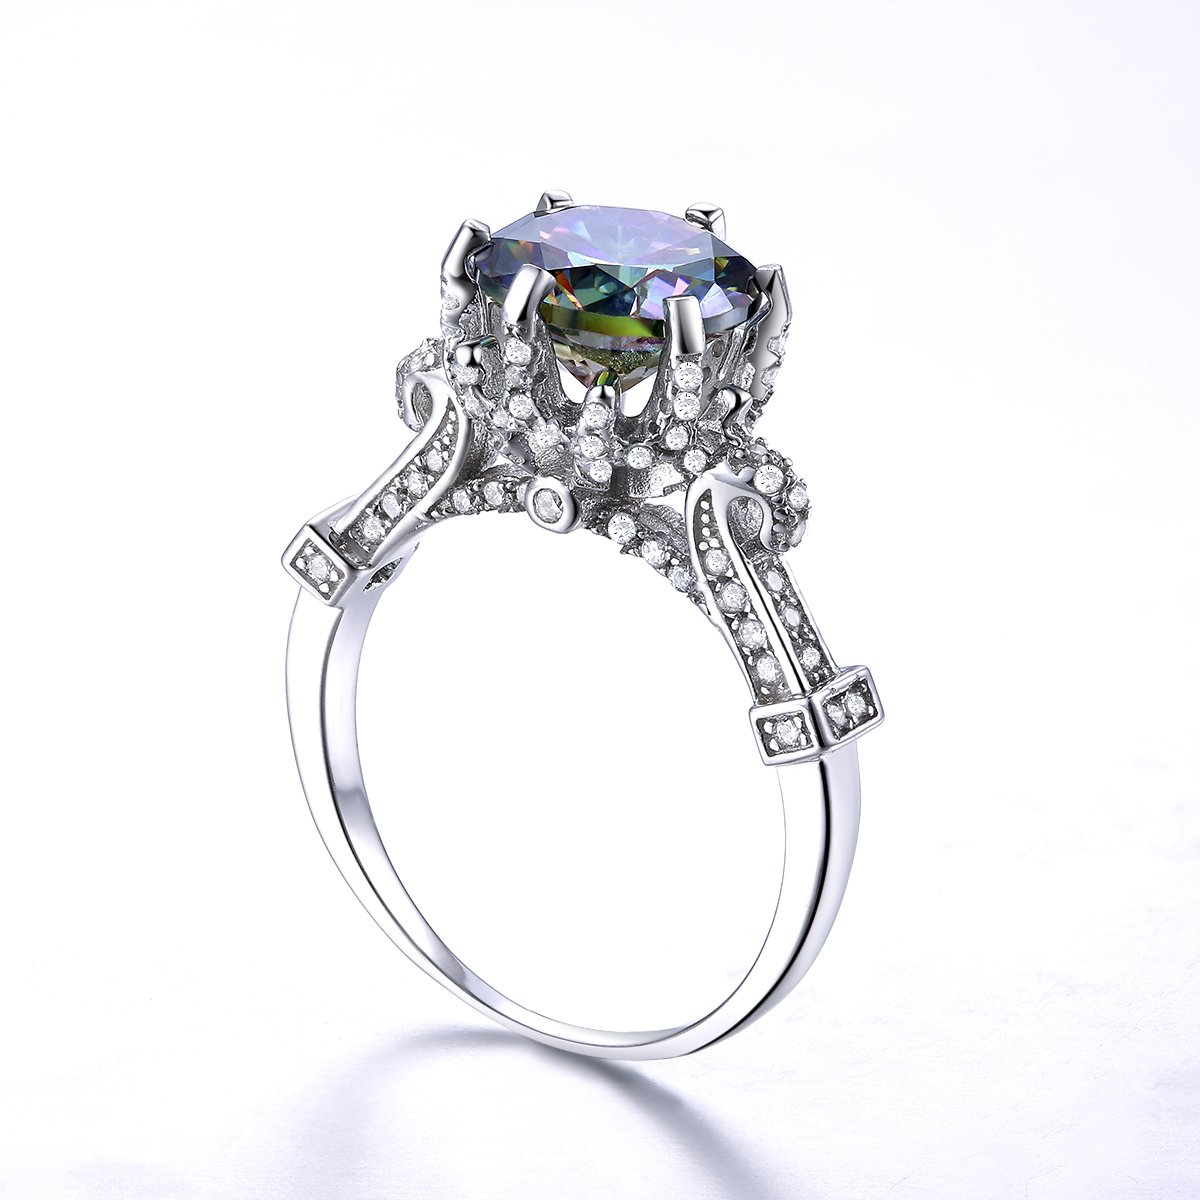 Auzeuner Cocktail Ring for Women 925 Sterling Silver Cathedral Band Cubic Zirconia CZ